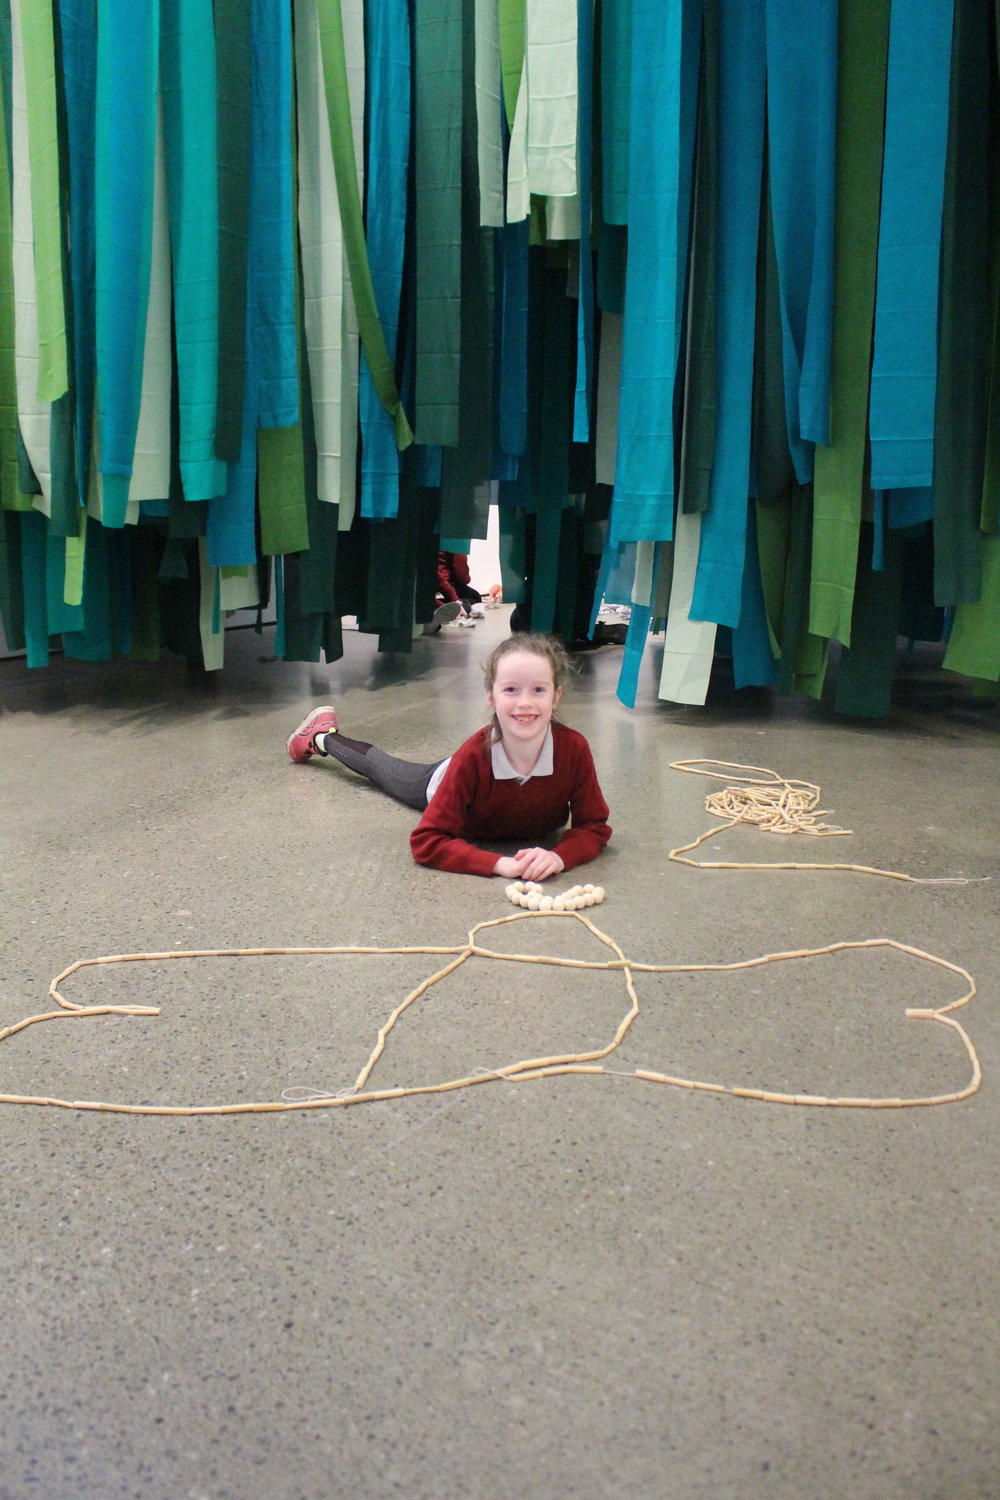 Drawing on the floor with a beaded line, one of the 'mobile elements' in Caoimhe Kilfeather's body of work